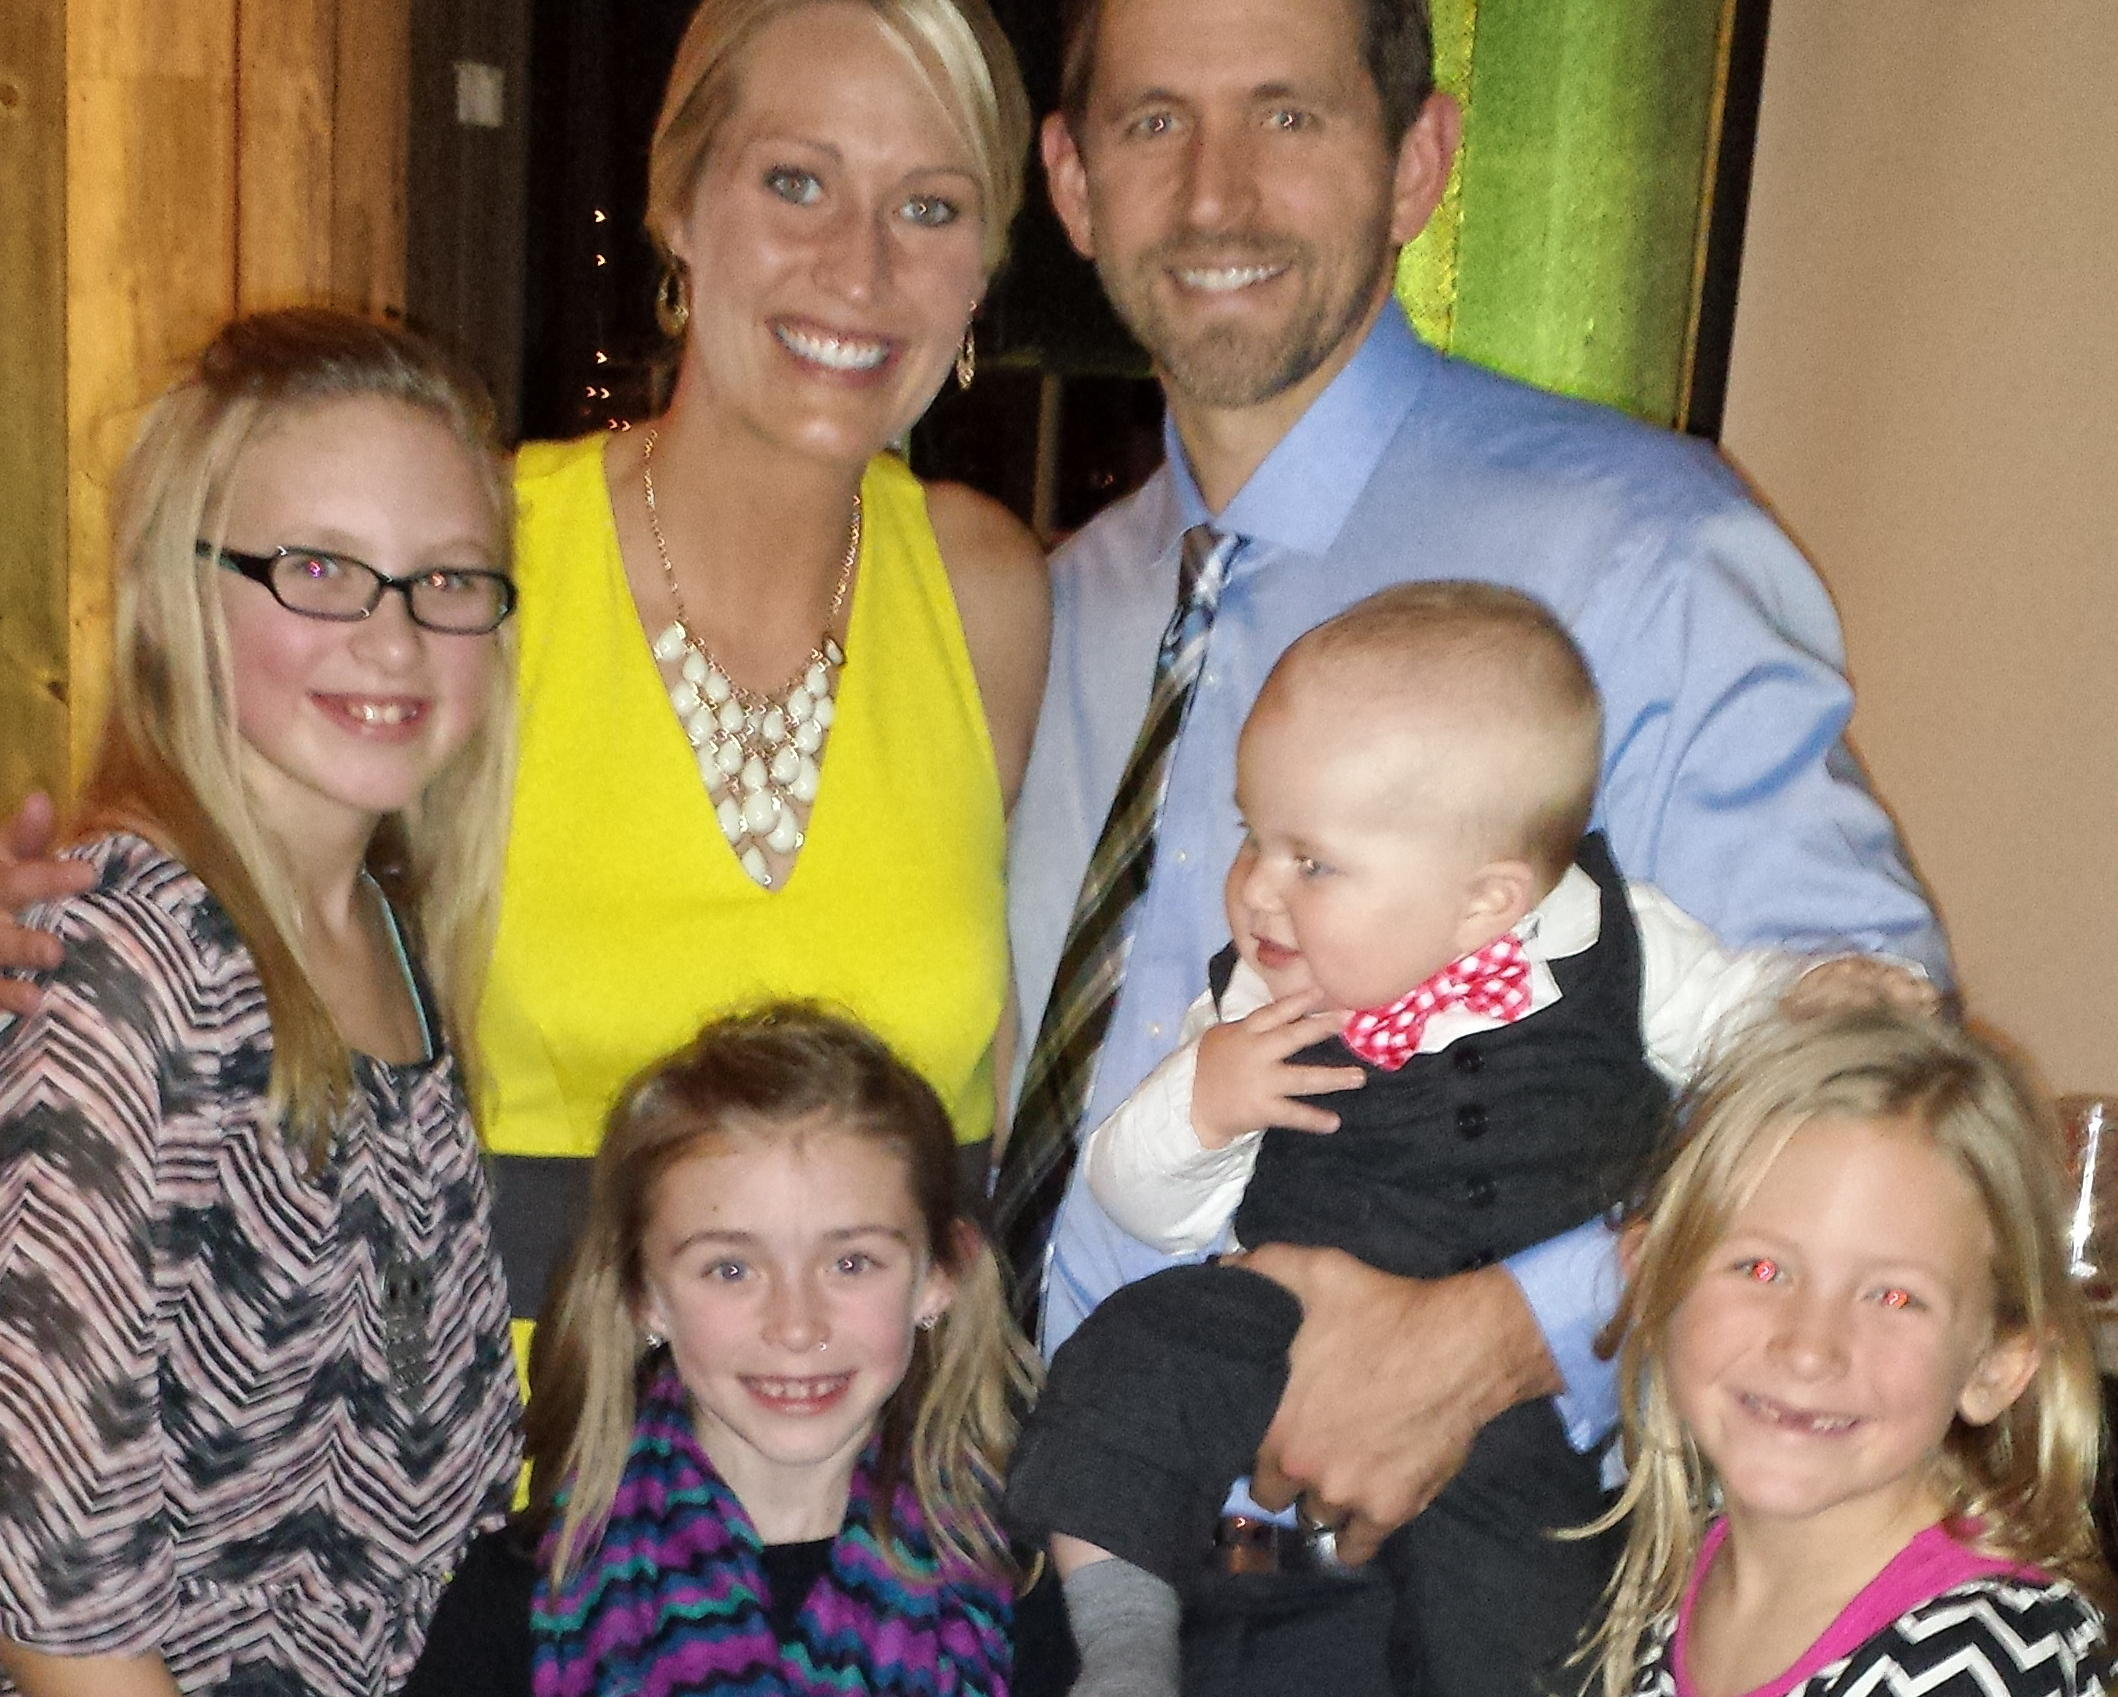 Rachel And Tim Scheib Of Des Moines Their Blended Family